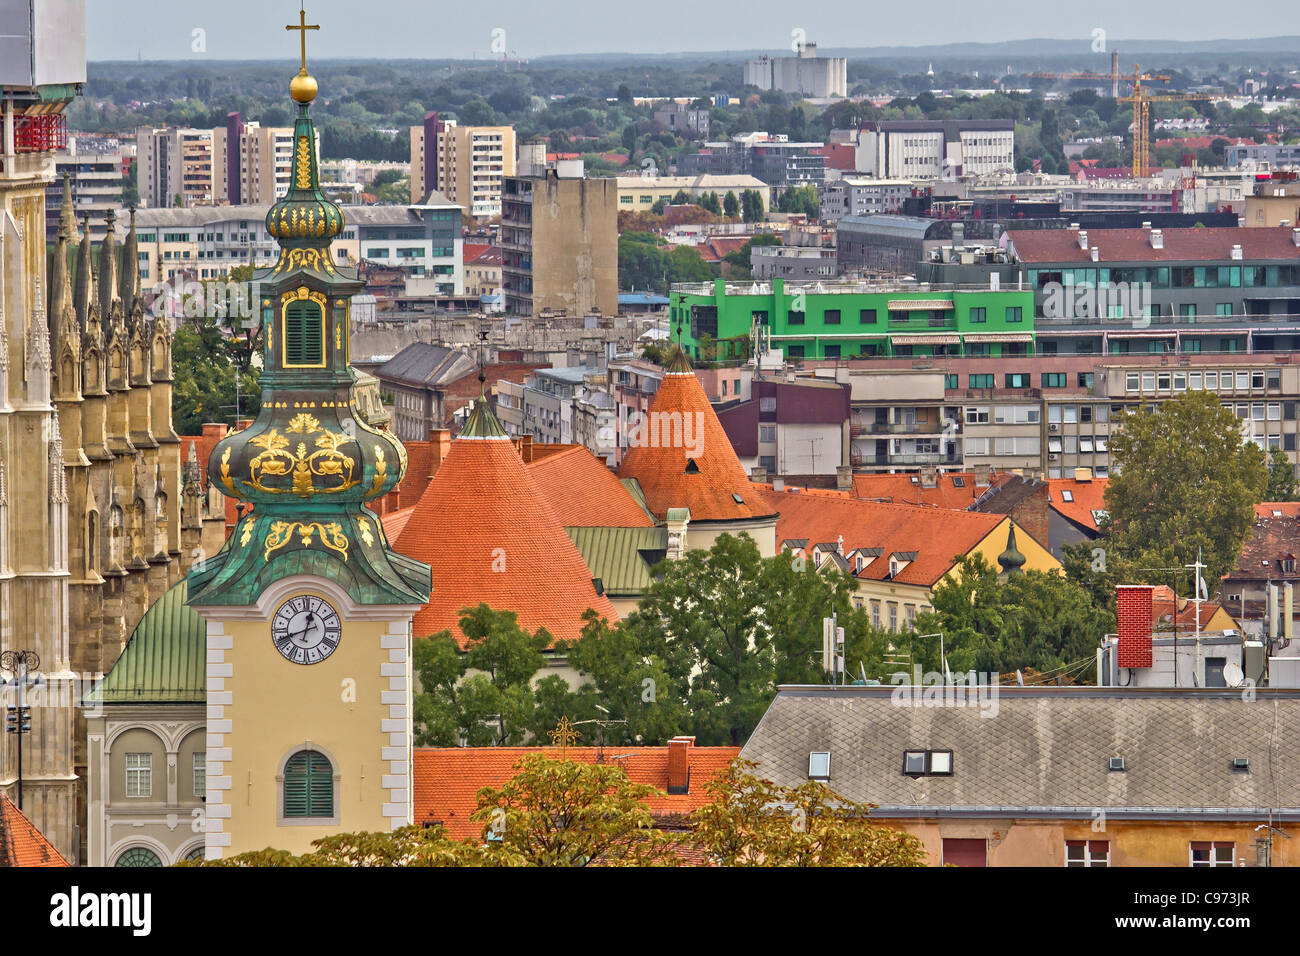 Zagreb rooftops and church tower - Stock Image